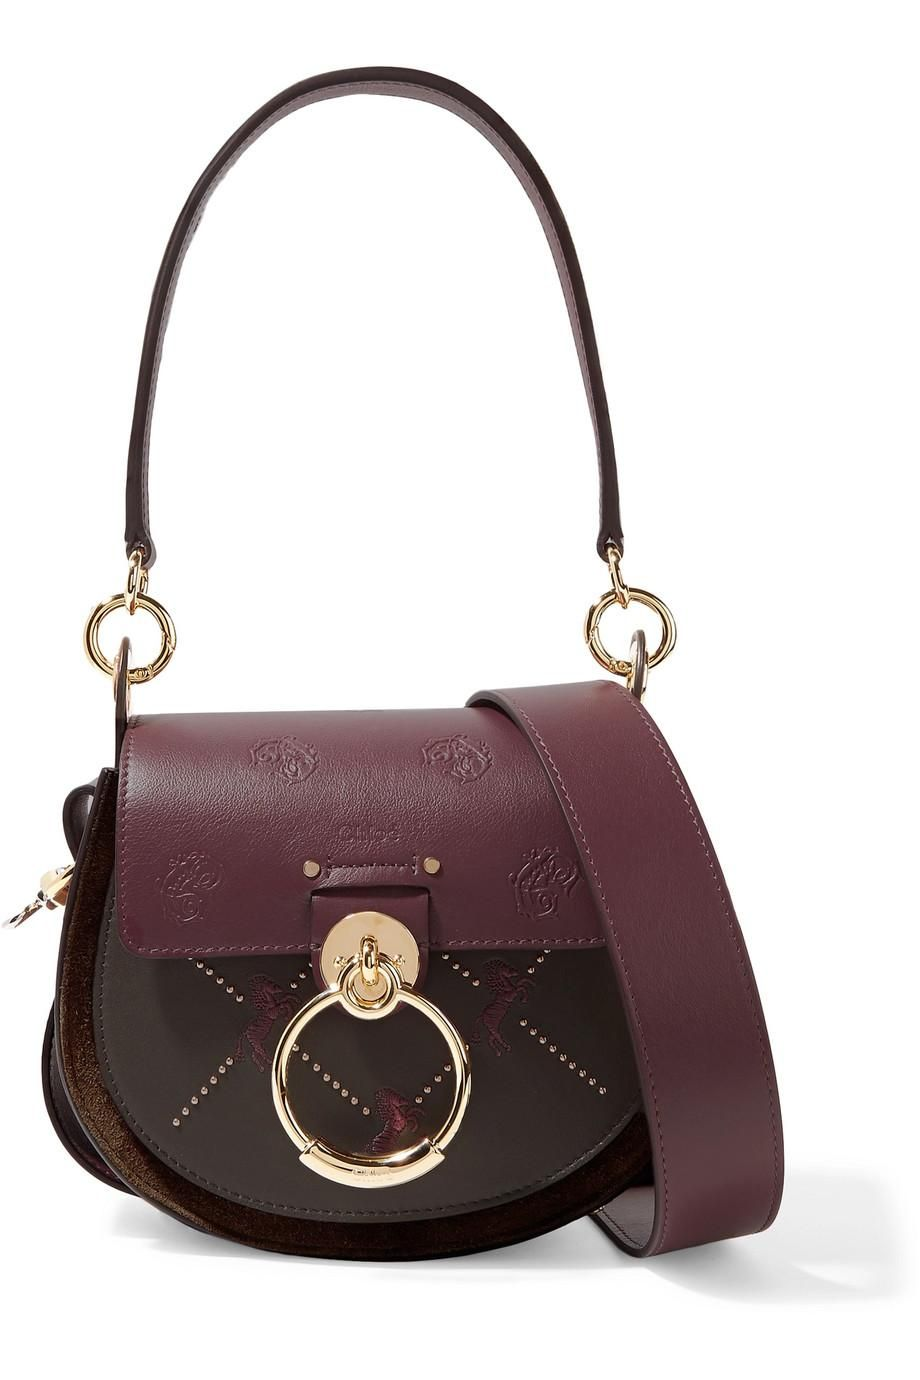 Chloe Leather and Suede Shoulder Bag